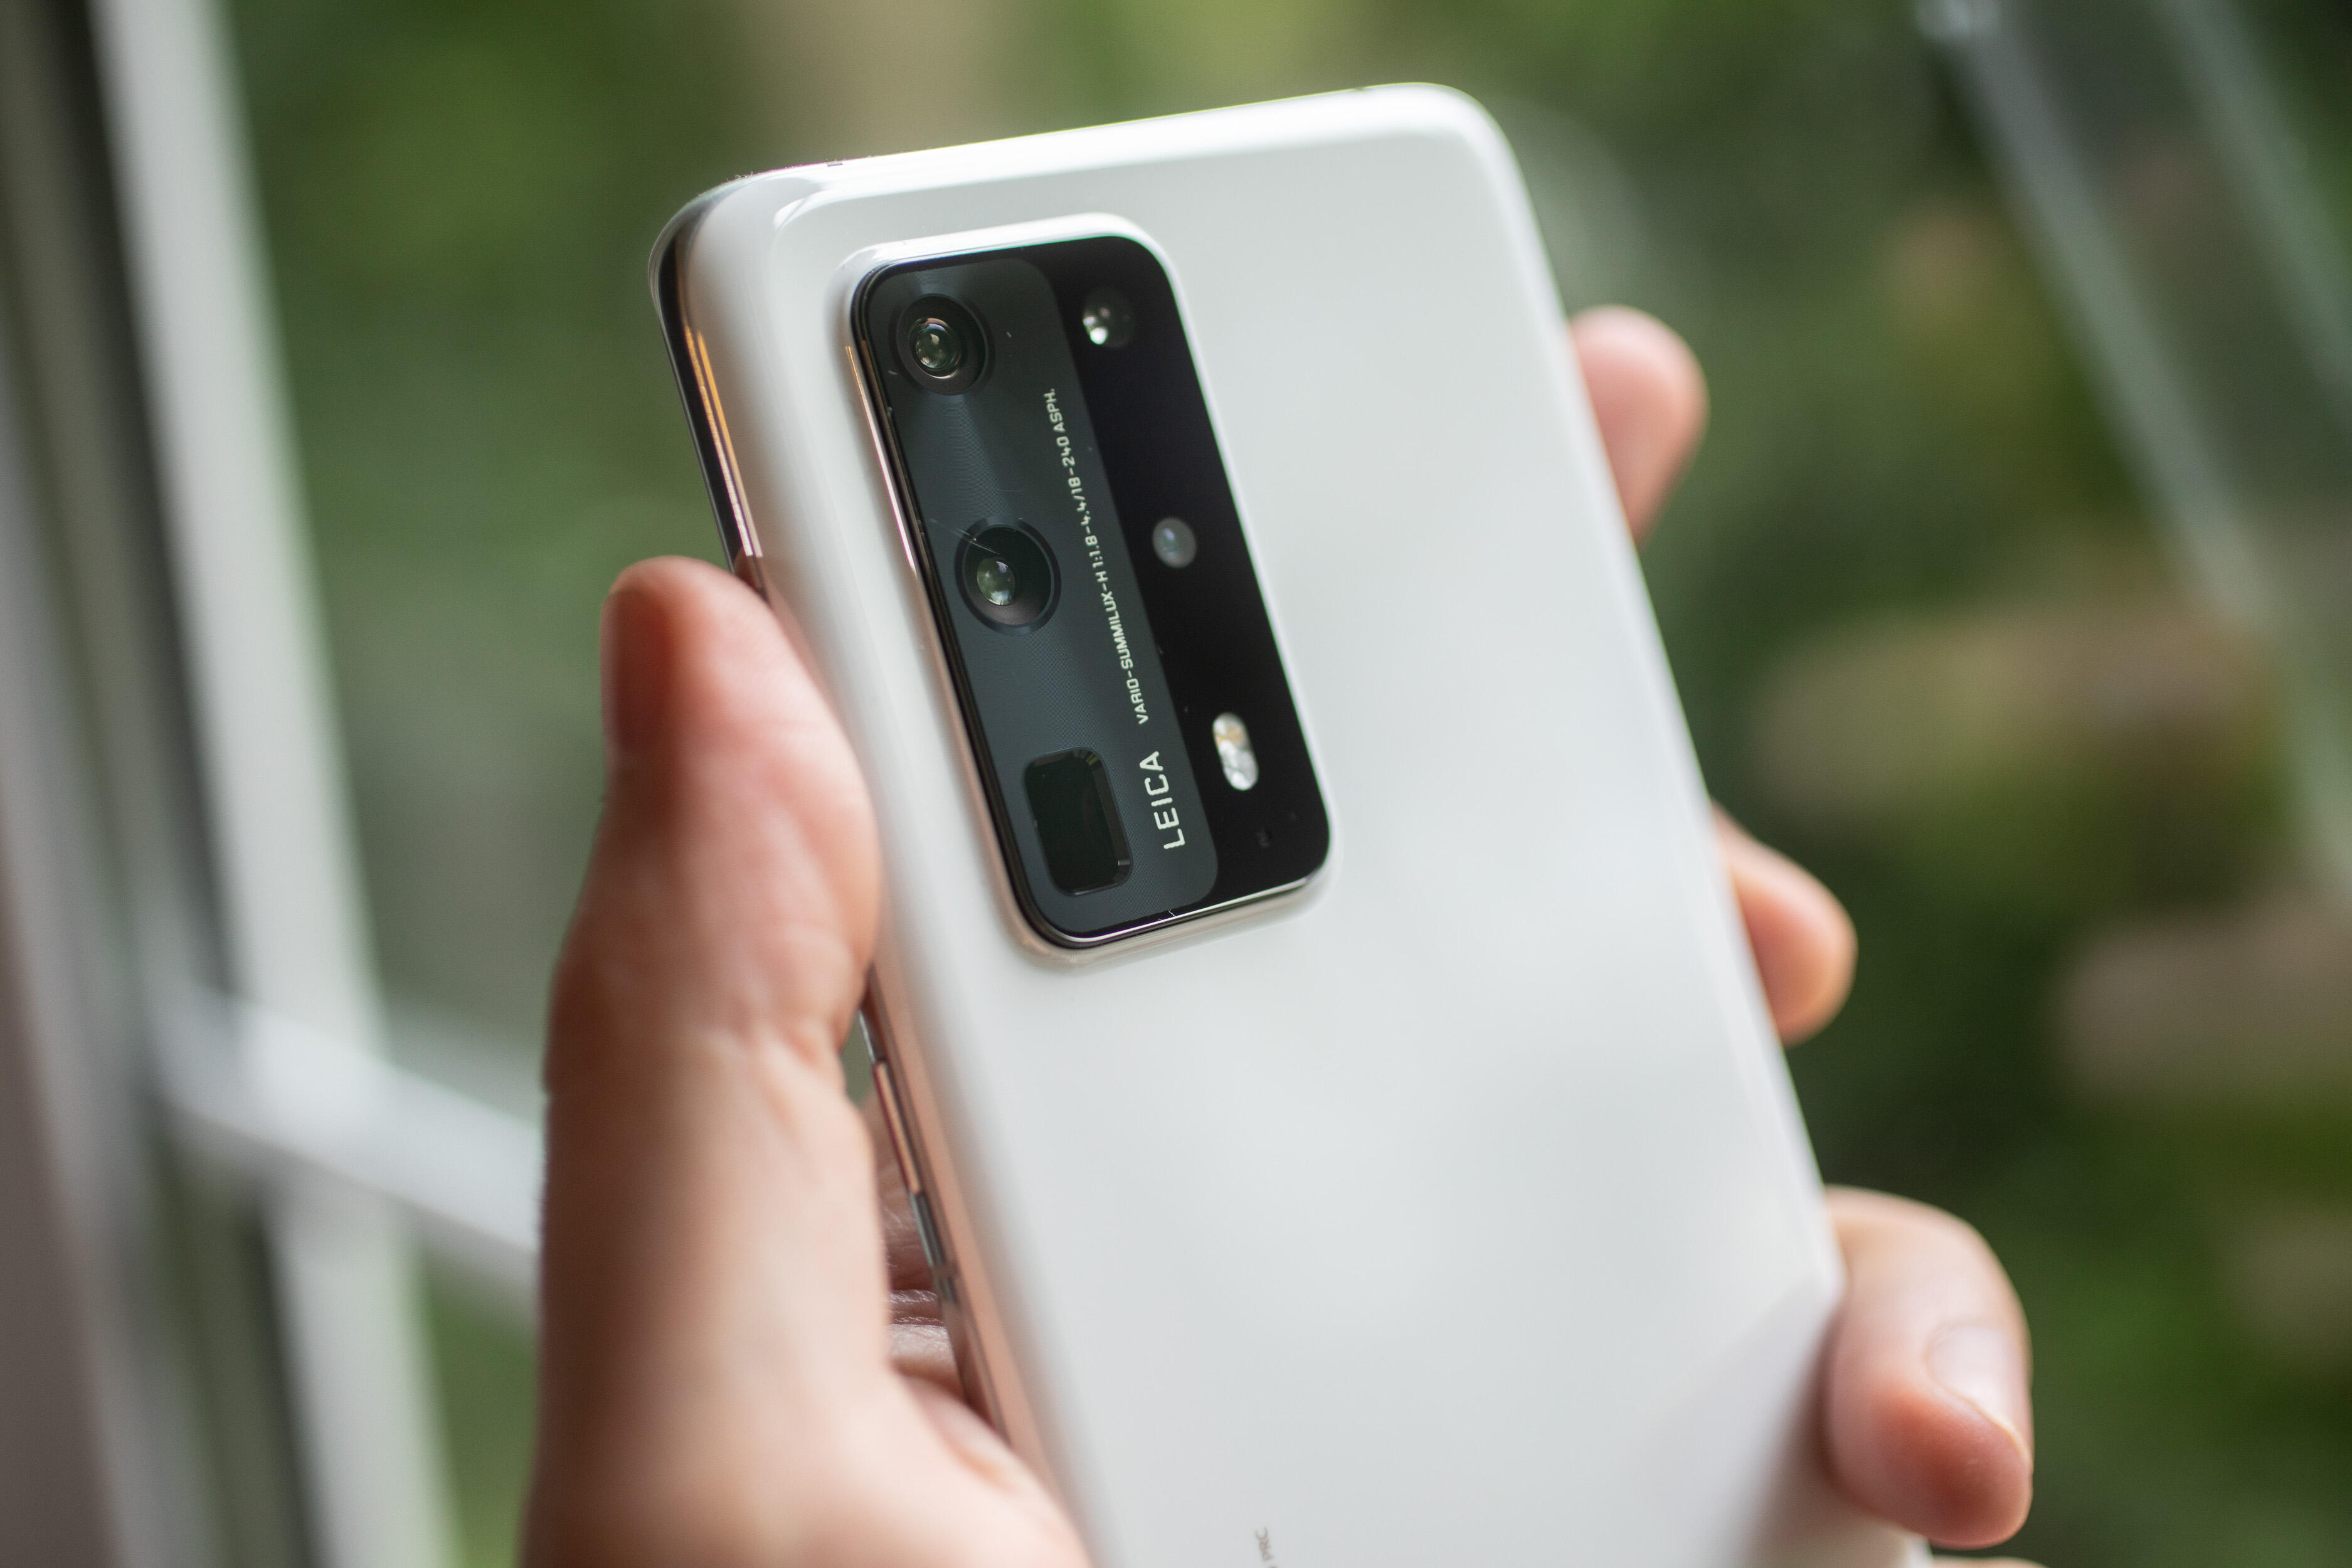 Huawei P40 Pro Plus' 10x optical zoom camera puts iPhone and Samsung to shame